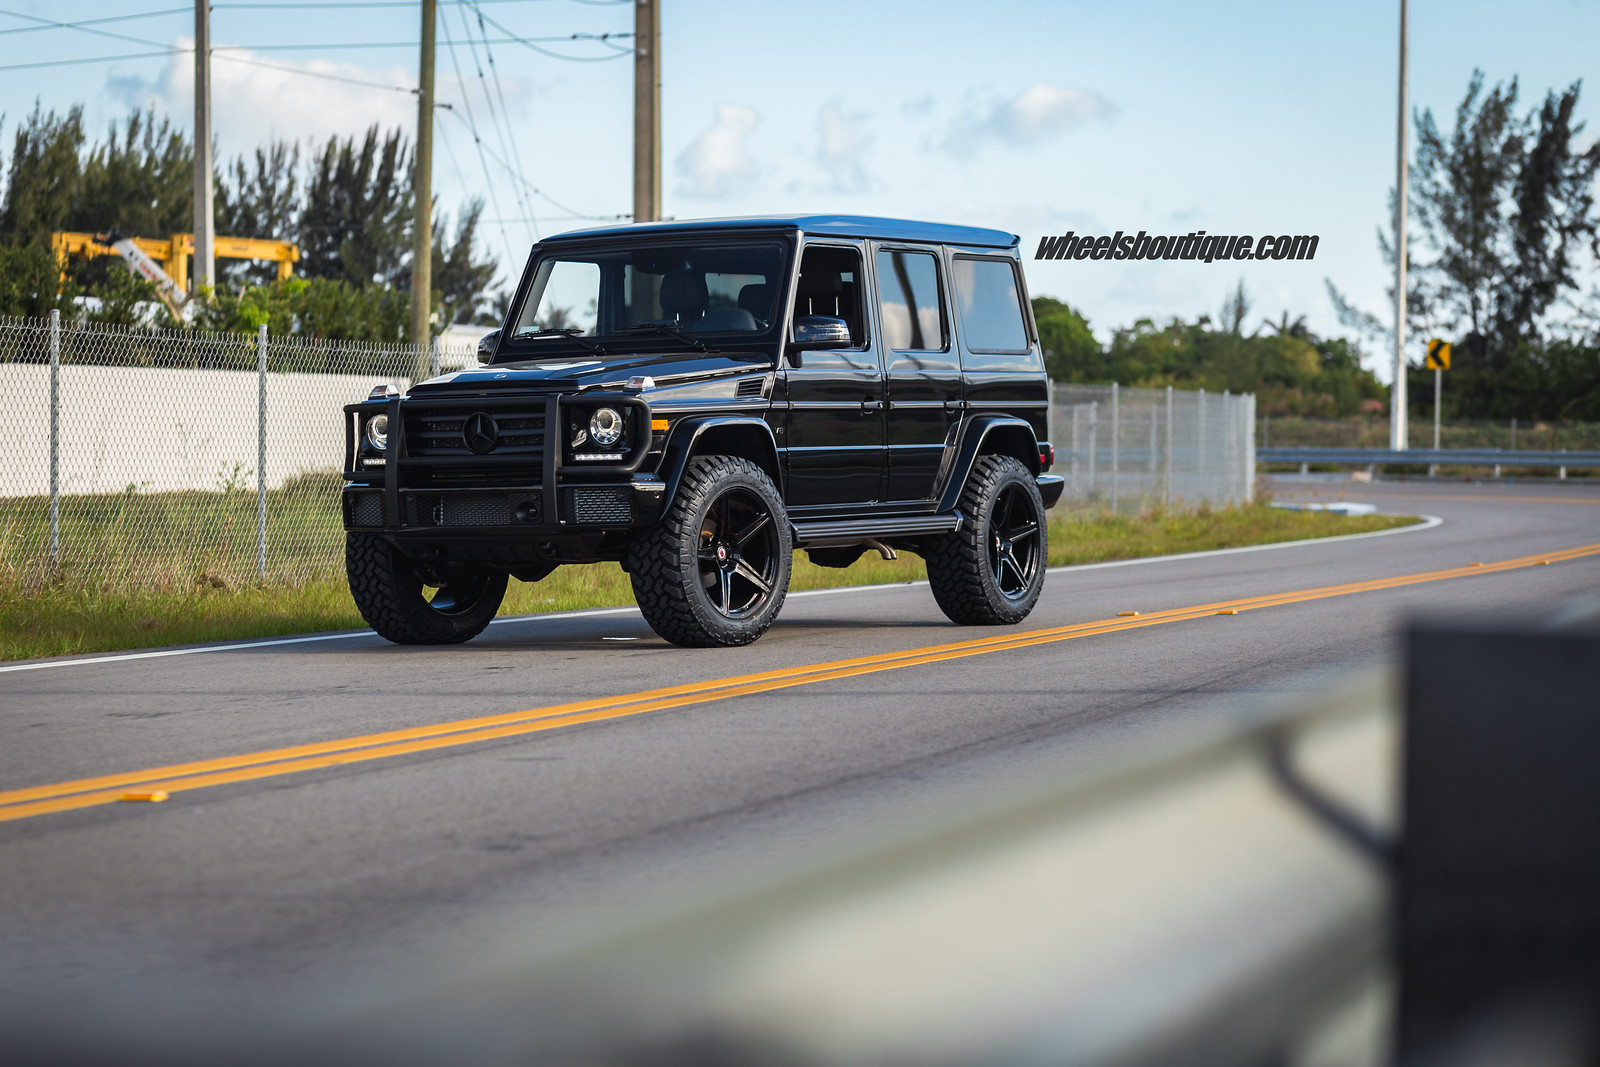 Up The Ante 5 Lift Kit On Mercedes Benz G Wagon With Hre S By Teamwb Mbworld Org Forums